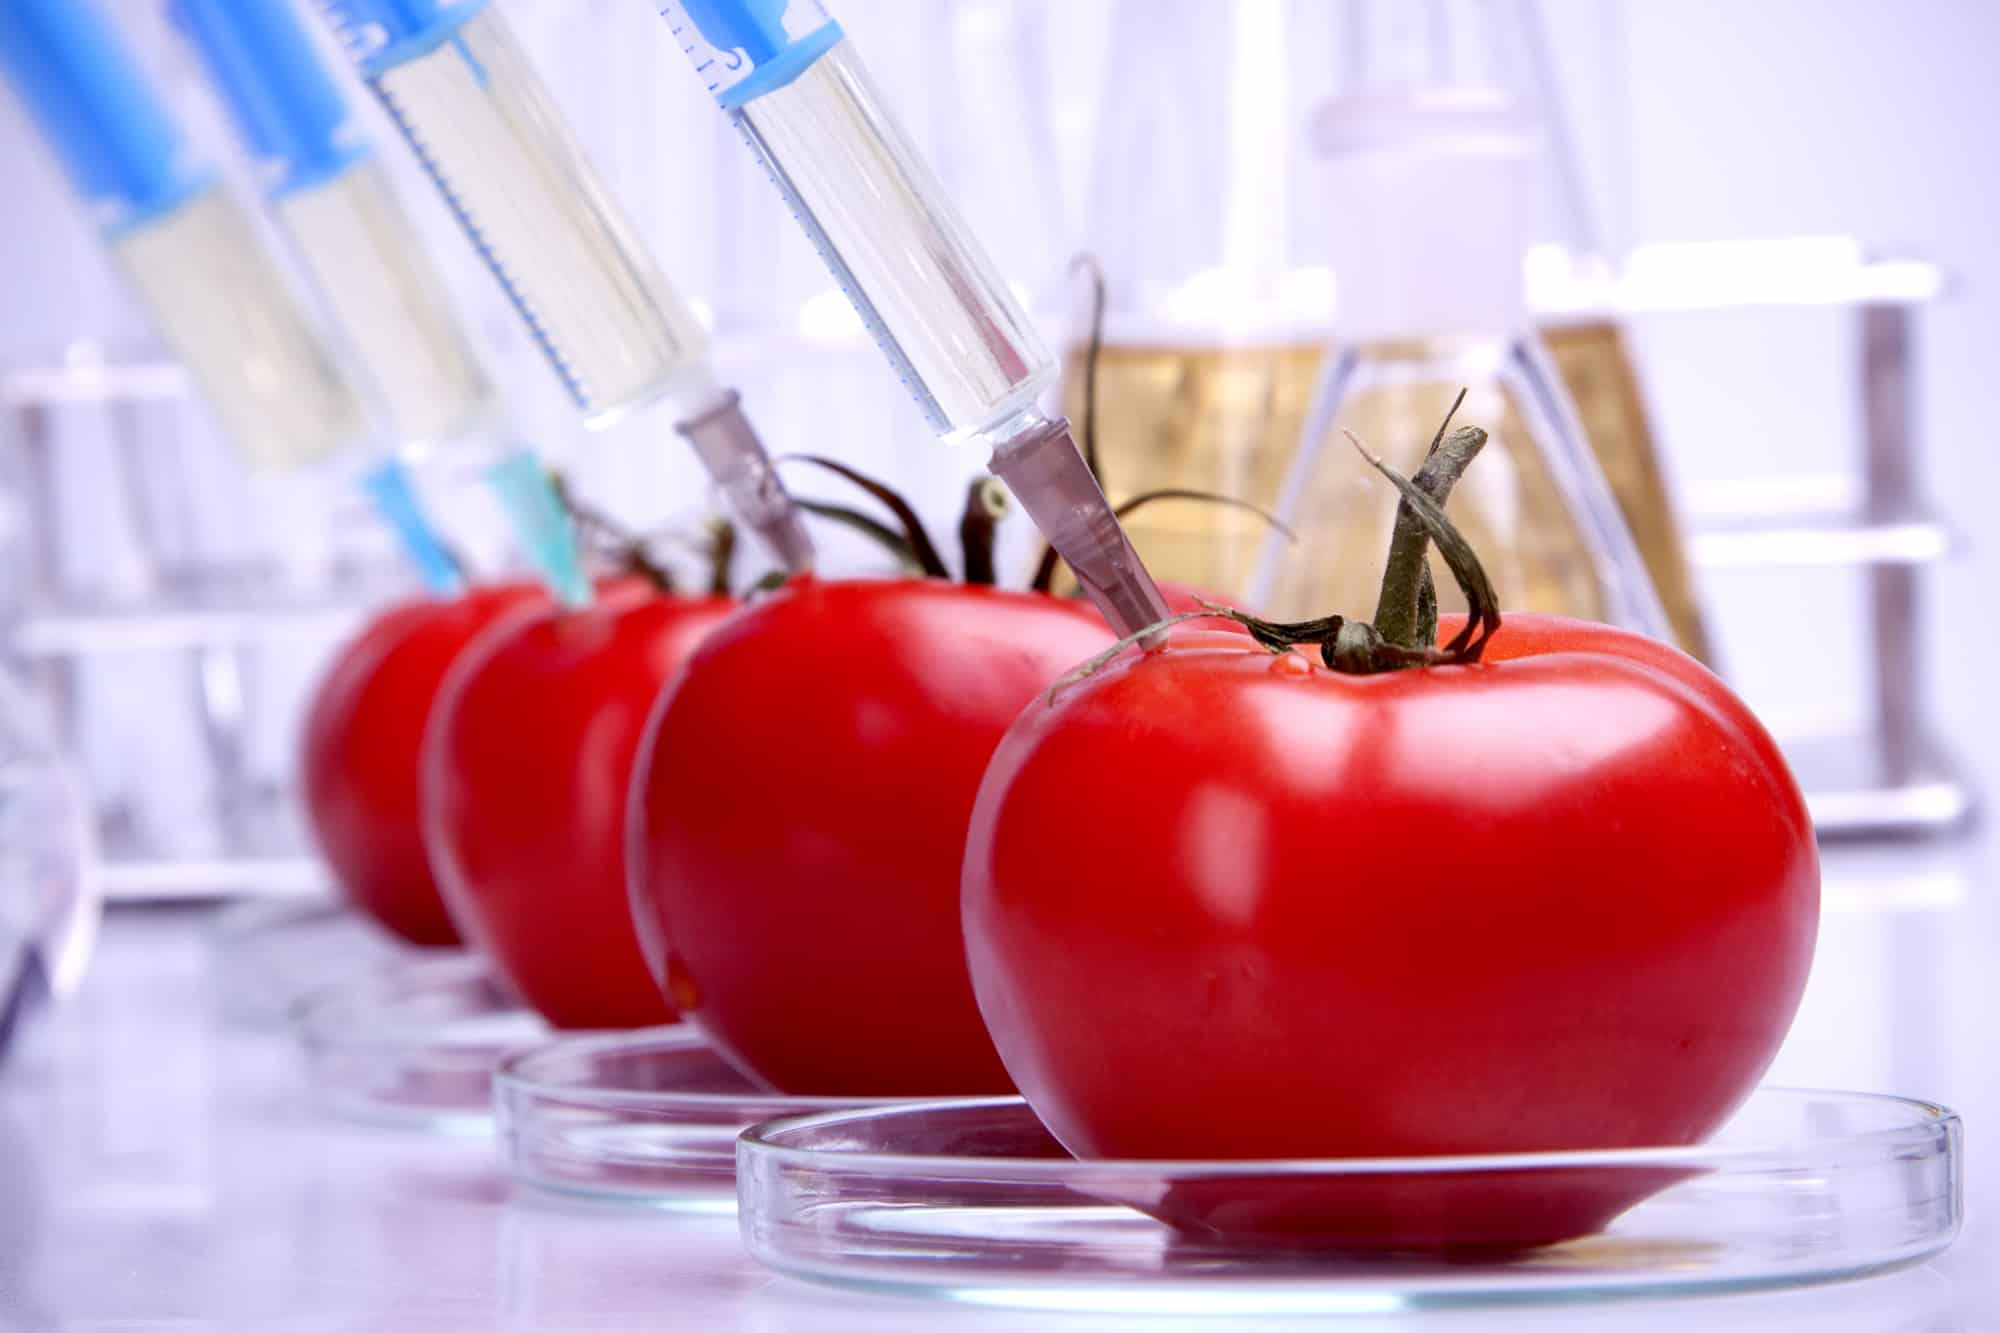 Genetically modified food in laboratory.